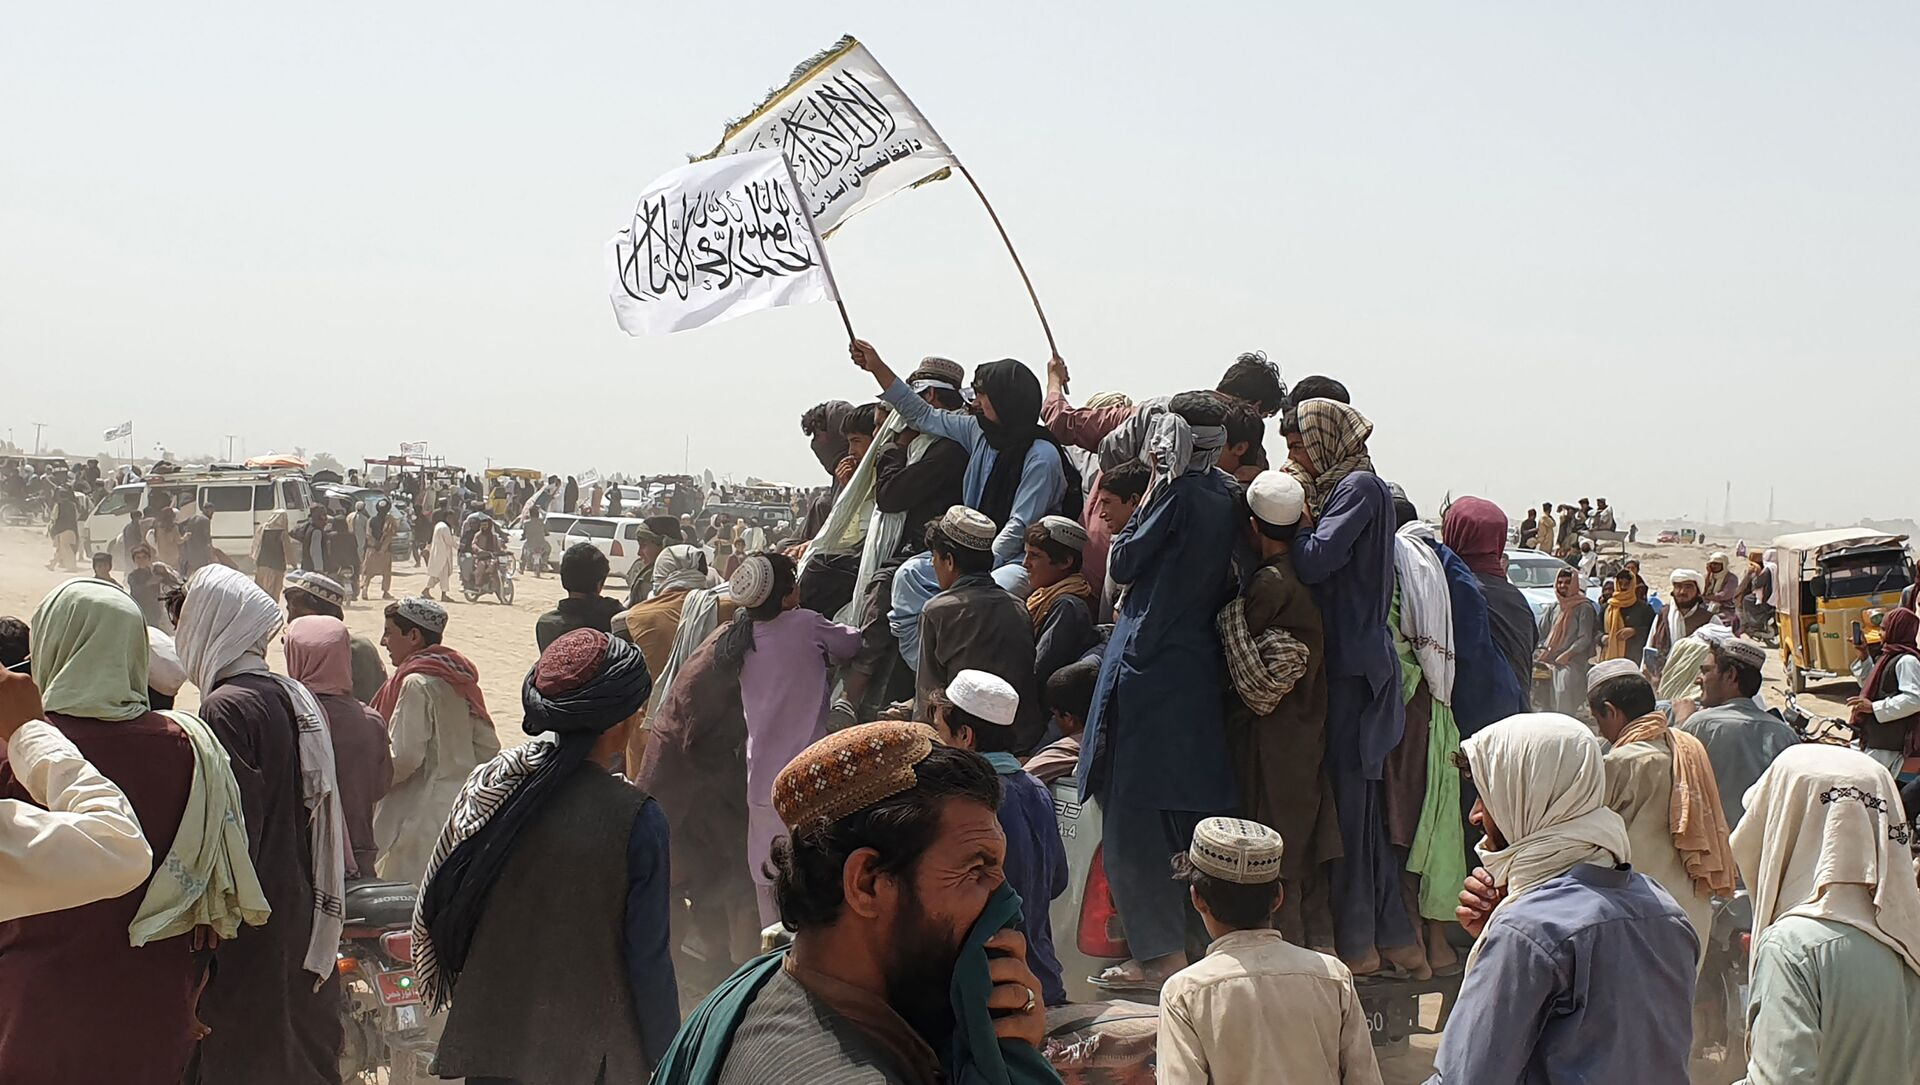 People wave Taliban flags as they drive through the Pakistani border town of Chaman on July 14, 2021, after the Taliban claimed they had captured the Afghan side of the border crossing of Spin Boldak along the frontier with Pakistan - Sputnik International, 1920, 14.07.2021